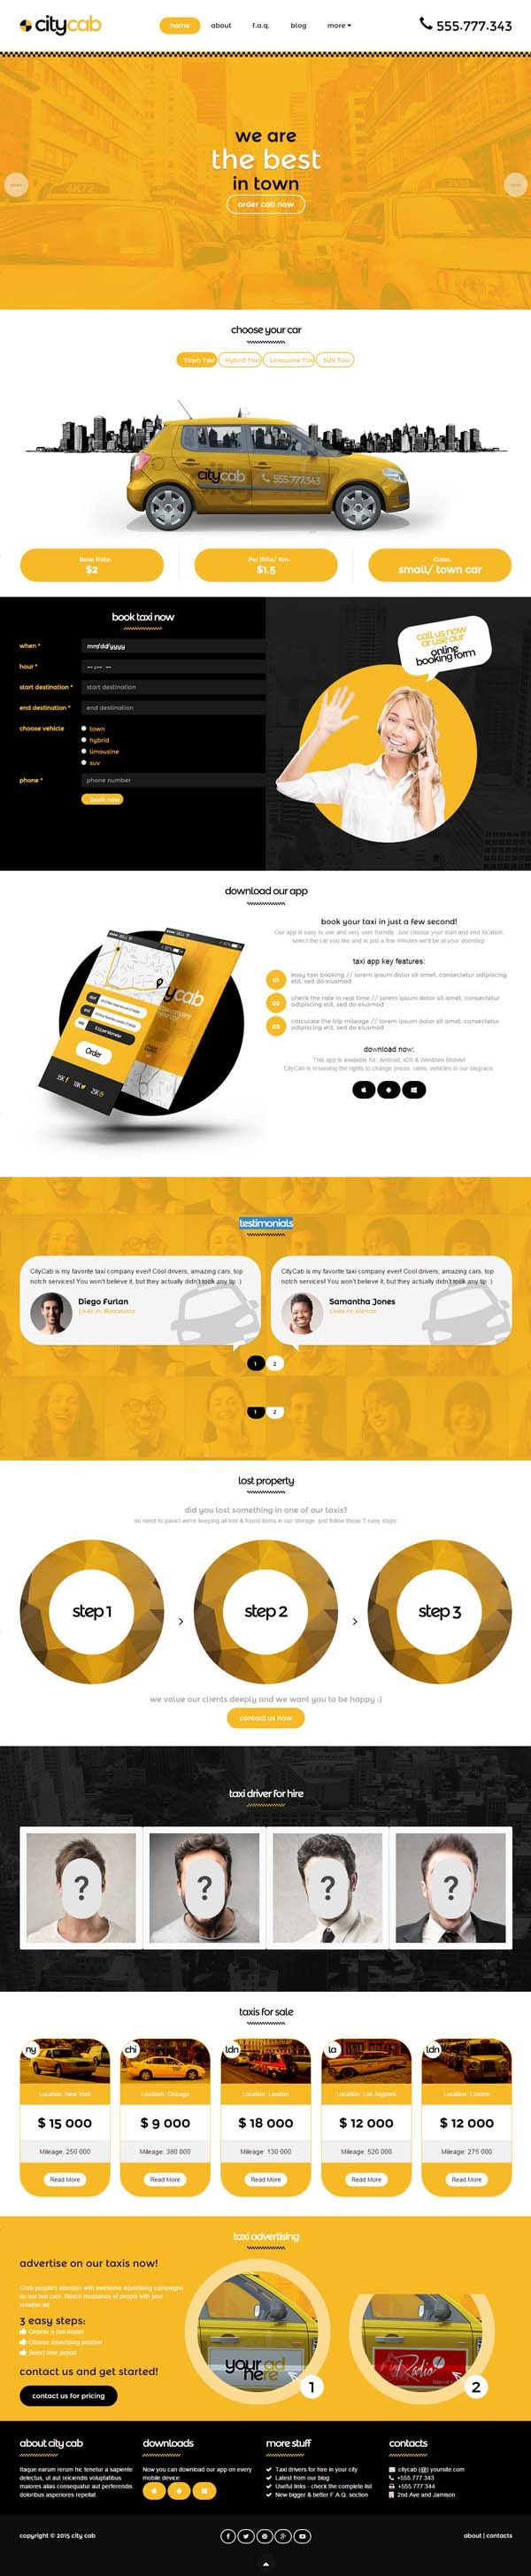 CityCab - Taxi Company Responsive HTML Template #html5templates #psdtemplates #responsivetemplates #webtemplates